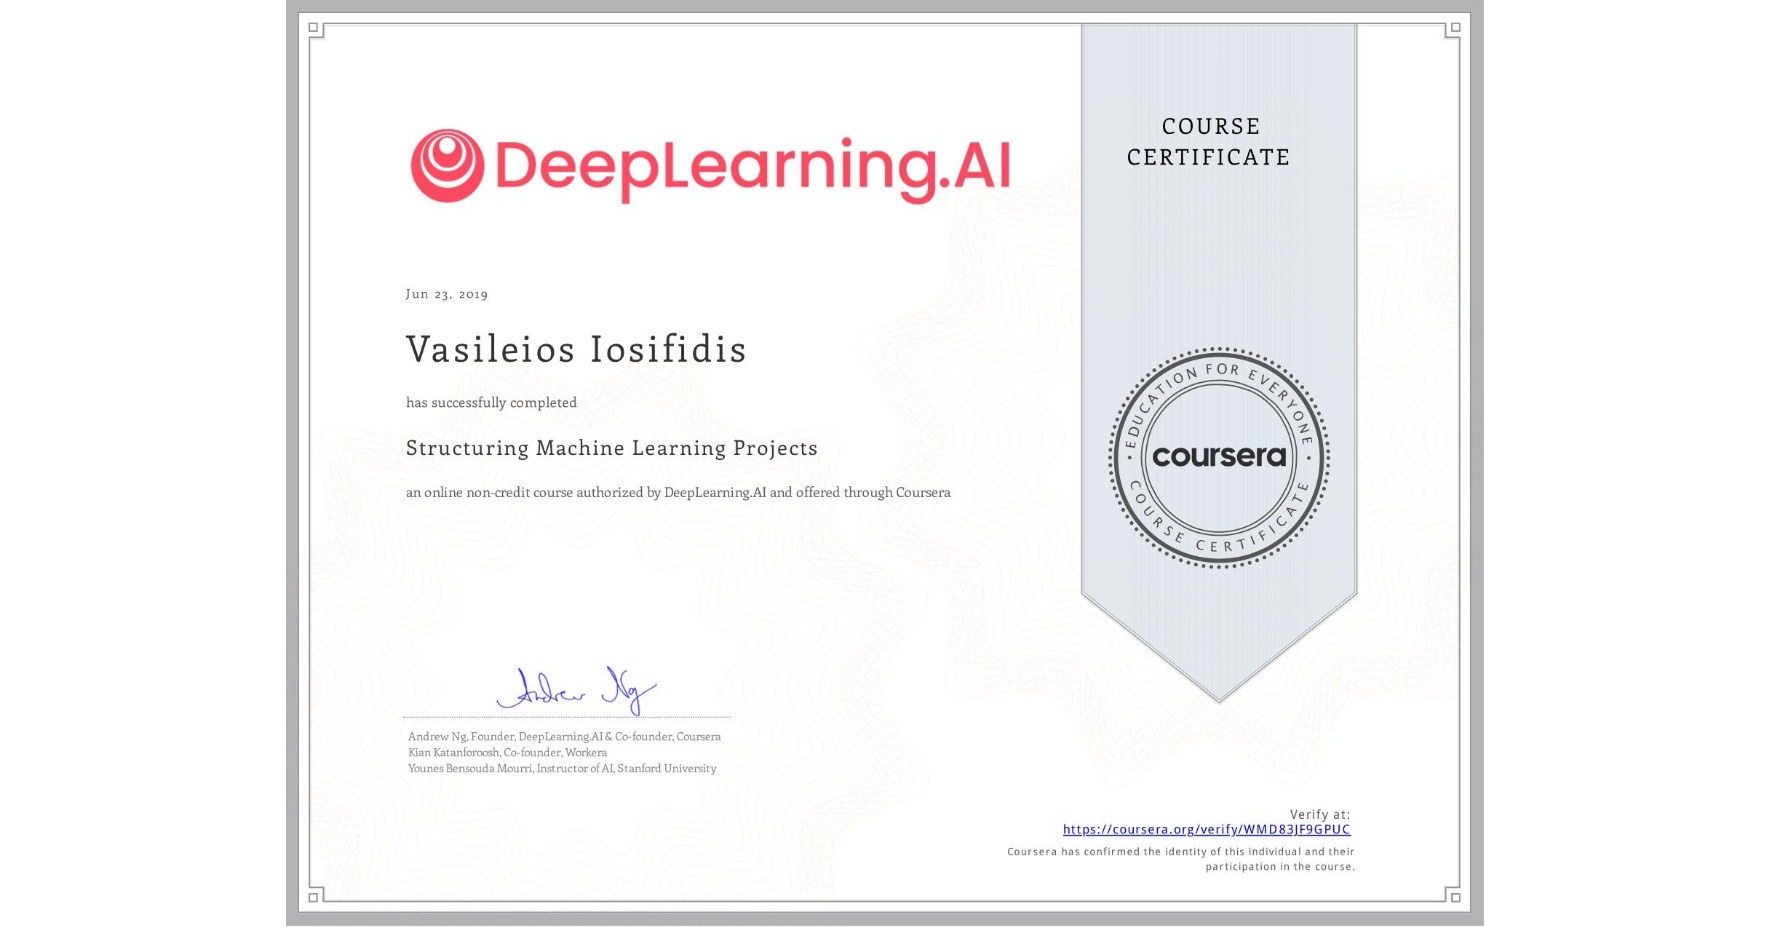 View certificate for Vasileios Iosifidis, Structuring Machine Learning Projects, an online non-credit course authorized by DeepLearning.AI and offered through Coursera